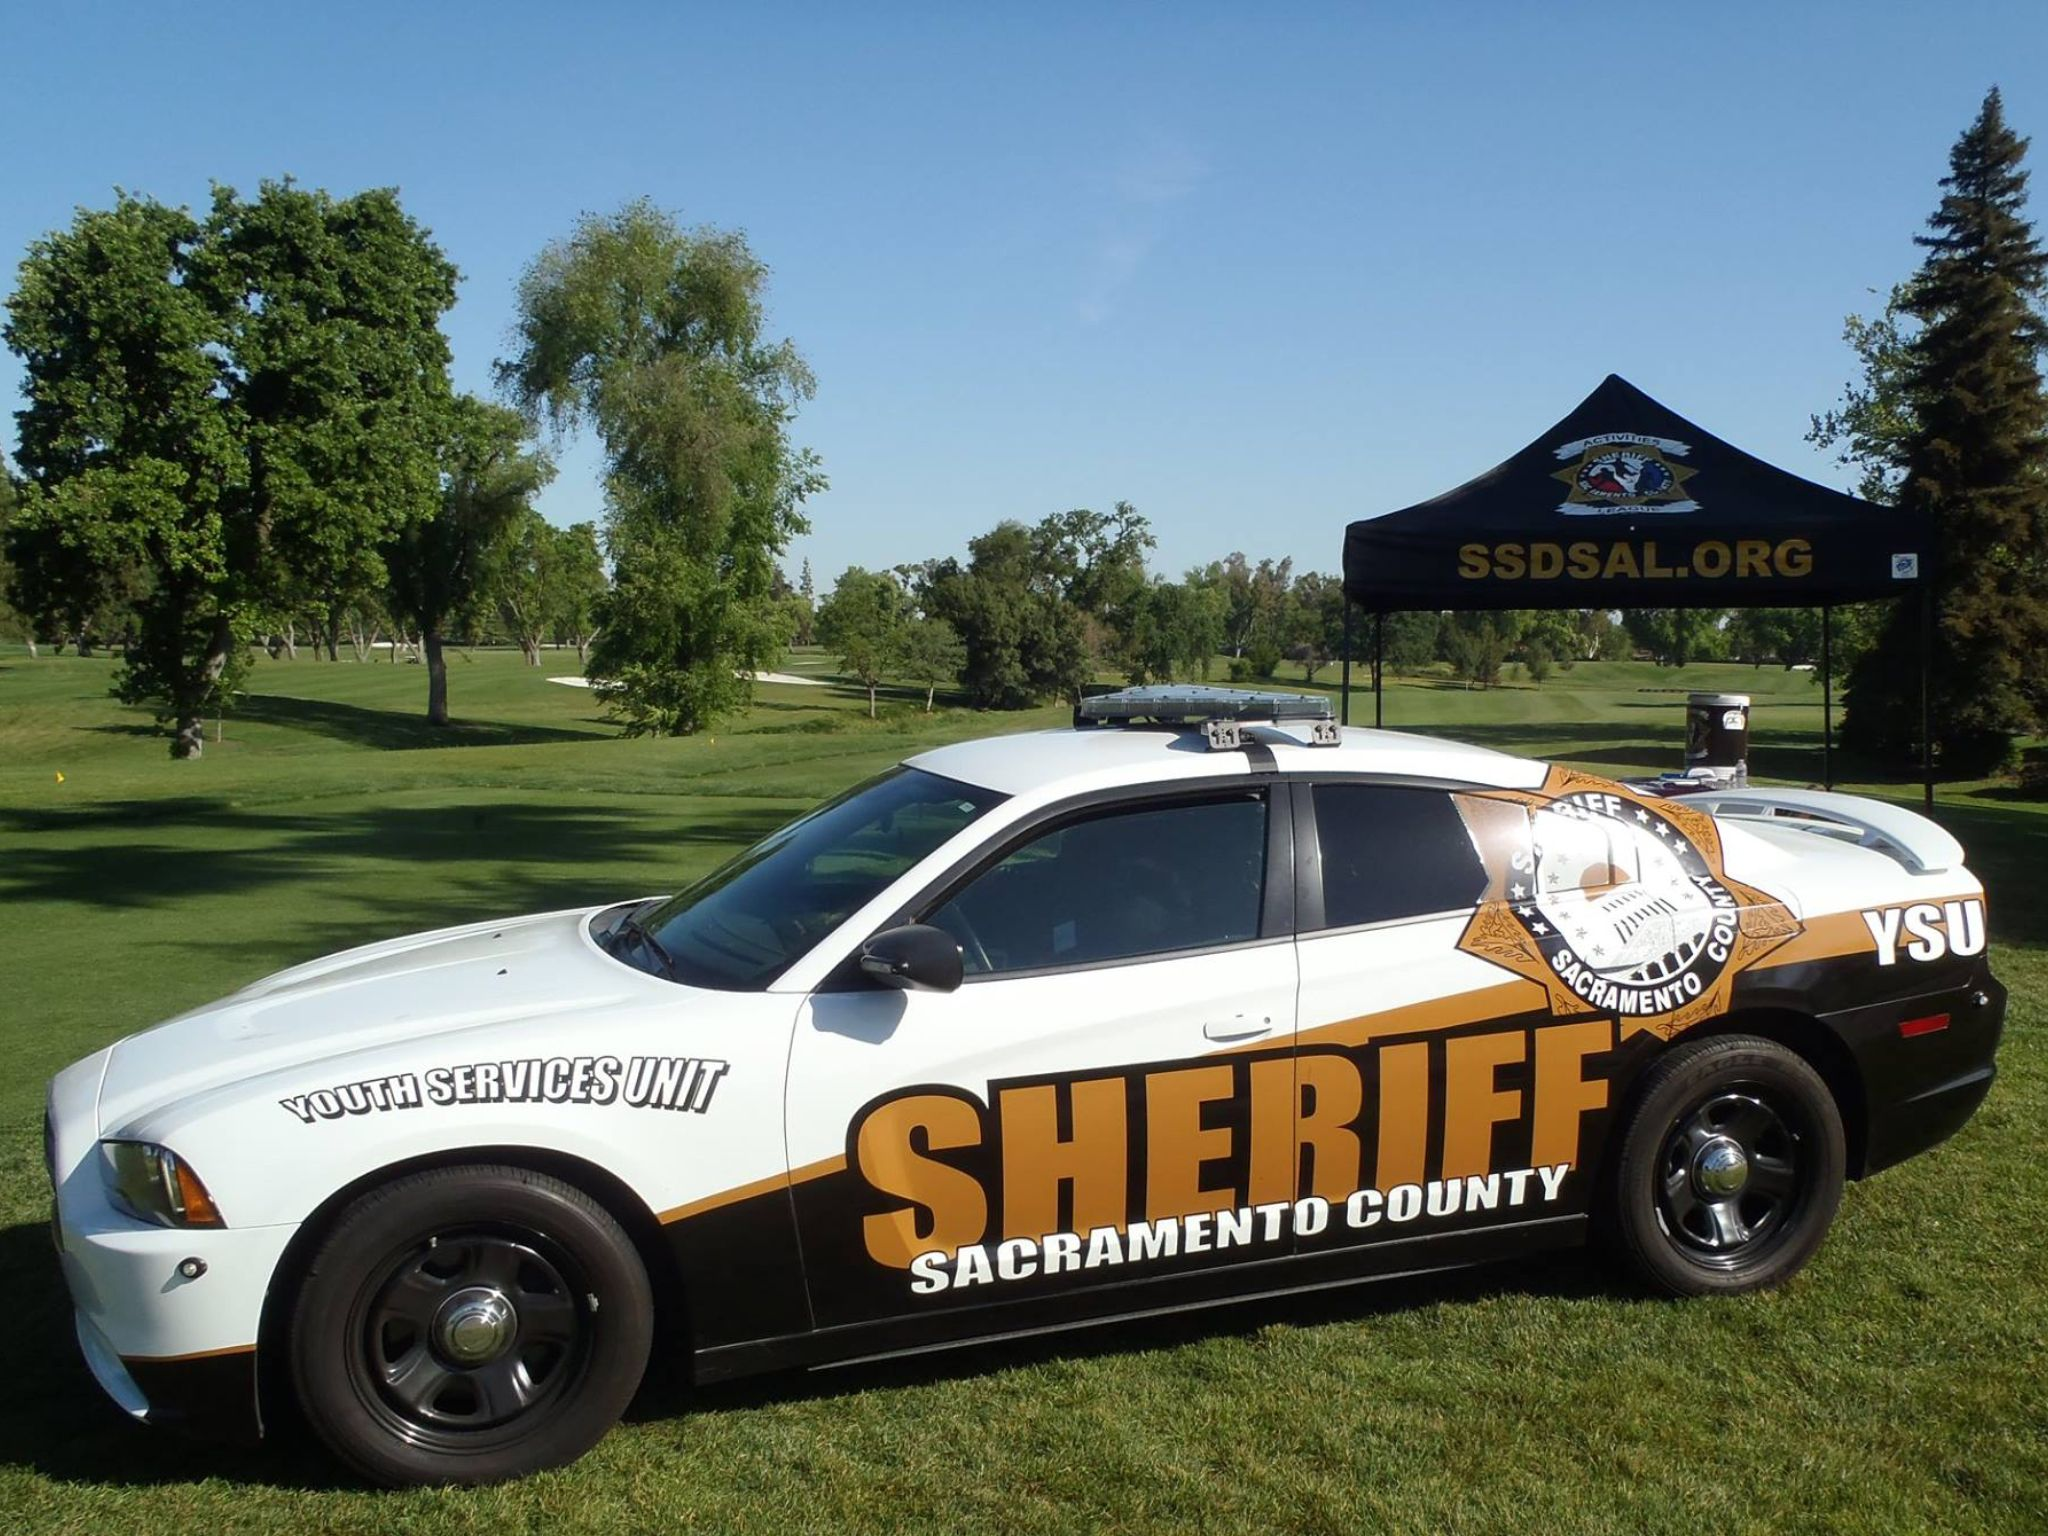 Sacramento County Sheriff Youth Services Unit